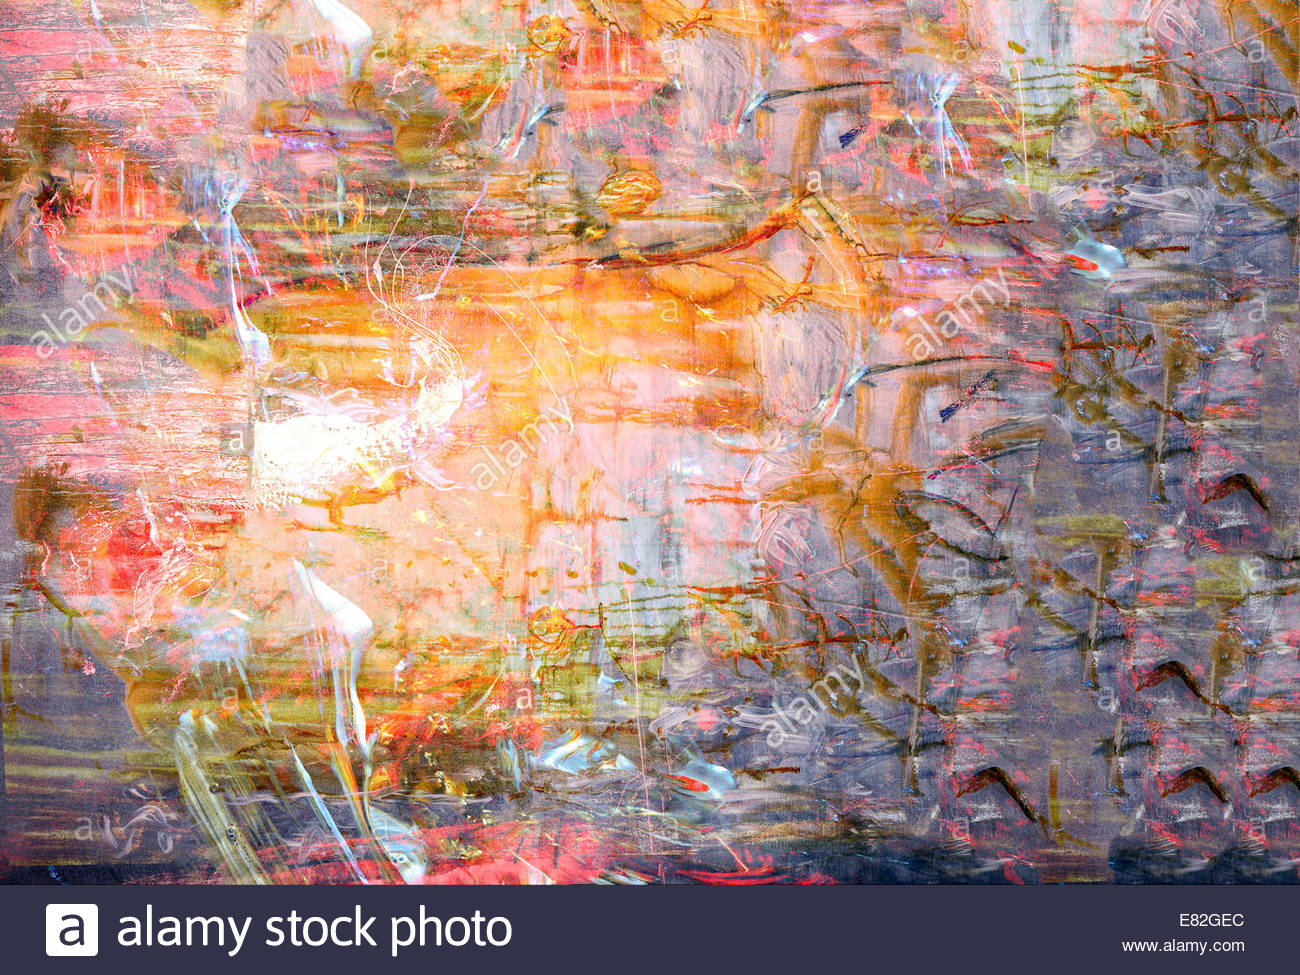 Nice large scale image of a original oil pastel painting on canvas stock image